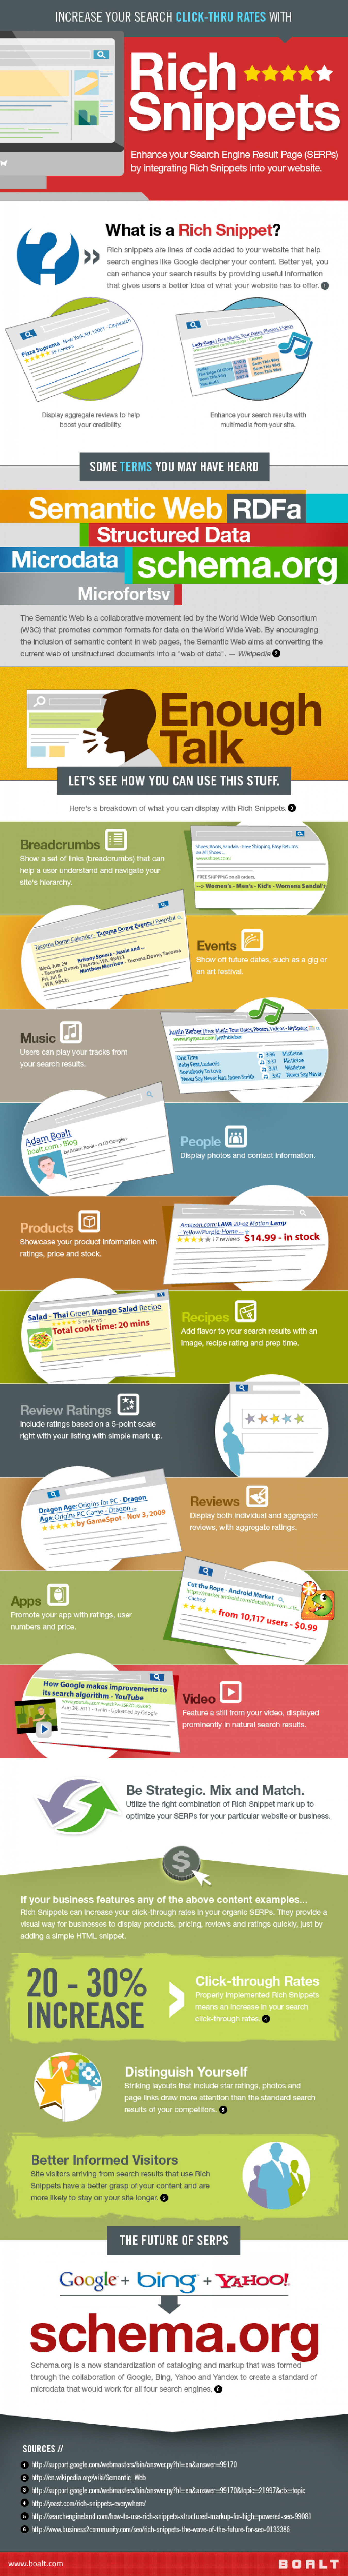 Rich Snippets - Increase Search Click-Thru Rates Infographic